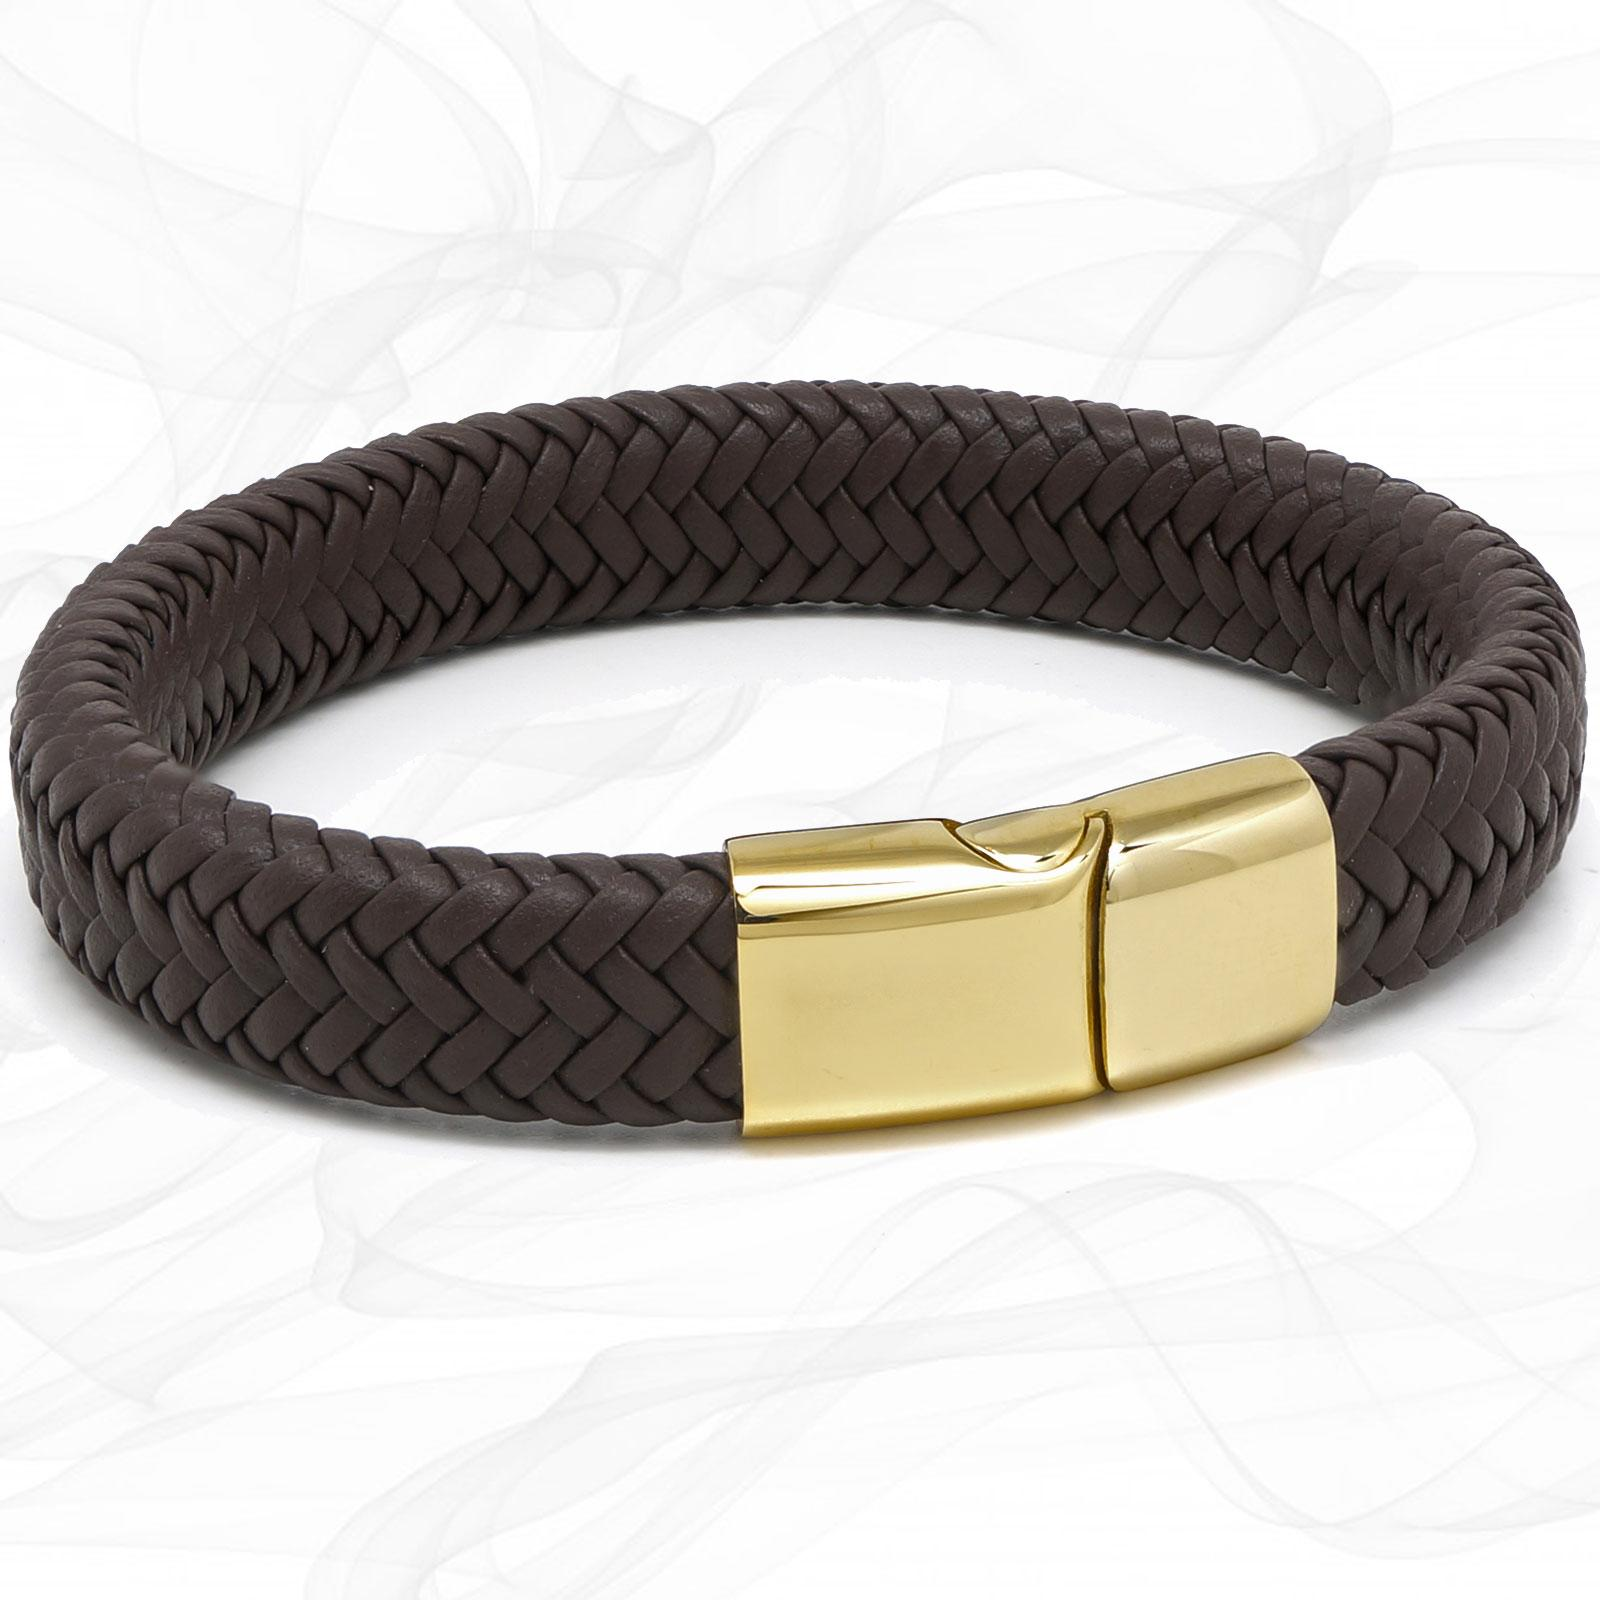 Chunky Brown Super Soft Premium Leather Bracelet with a Gold Sliding Magnetic Clasp.